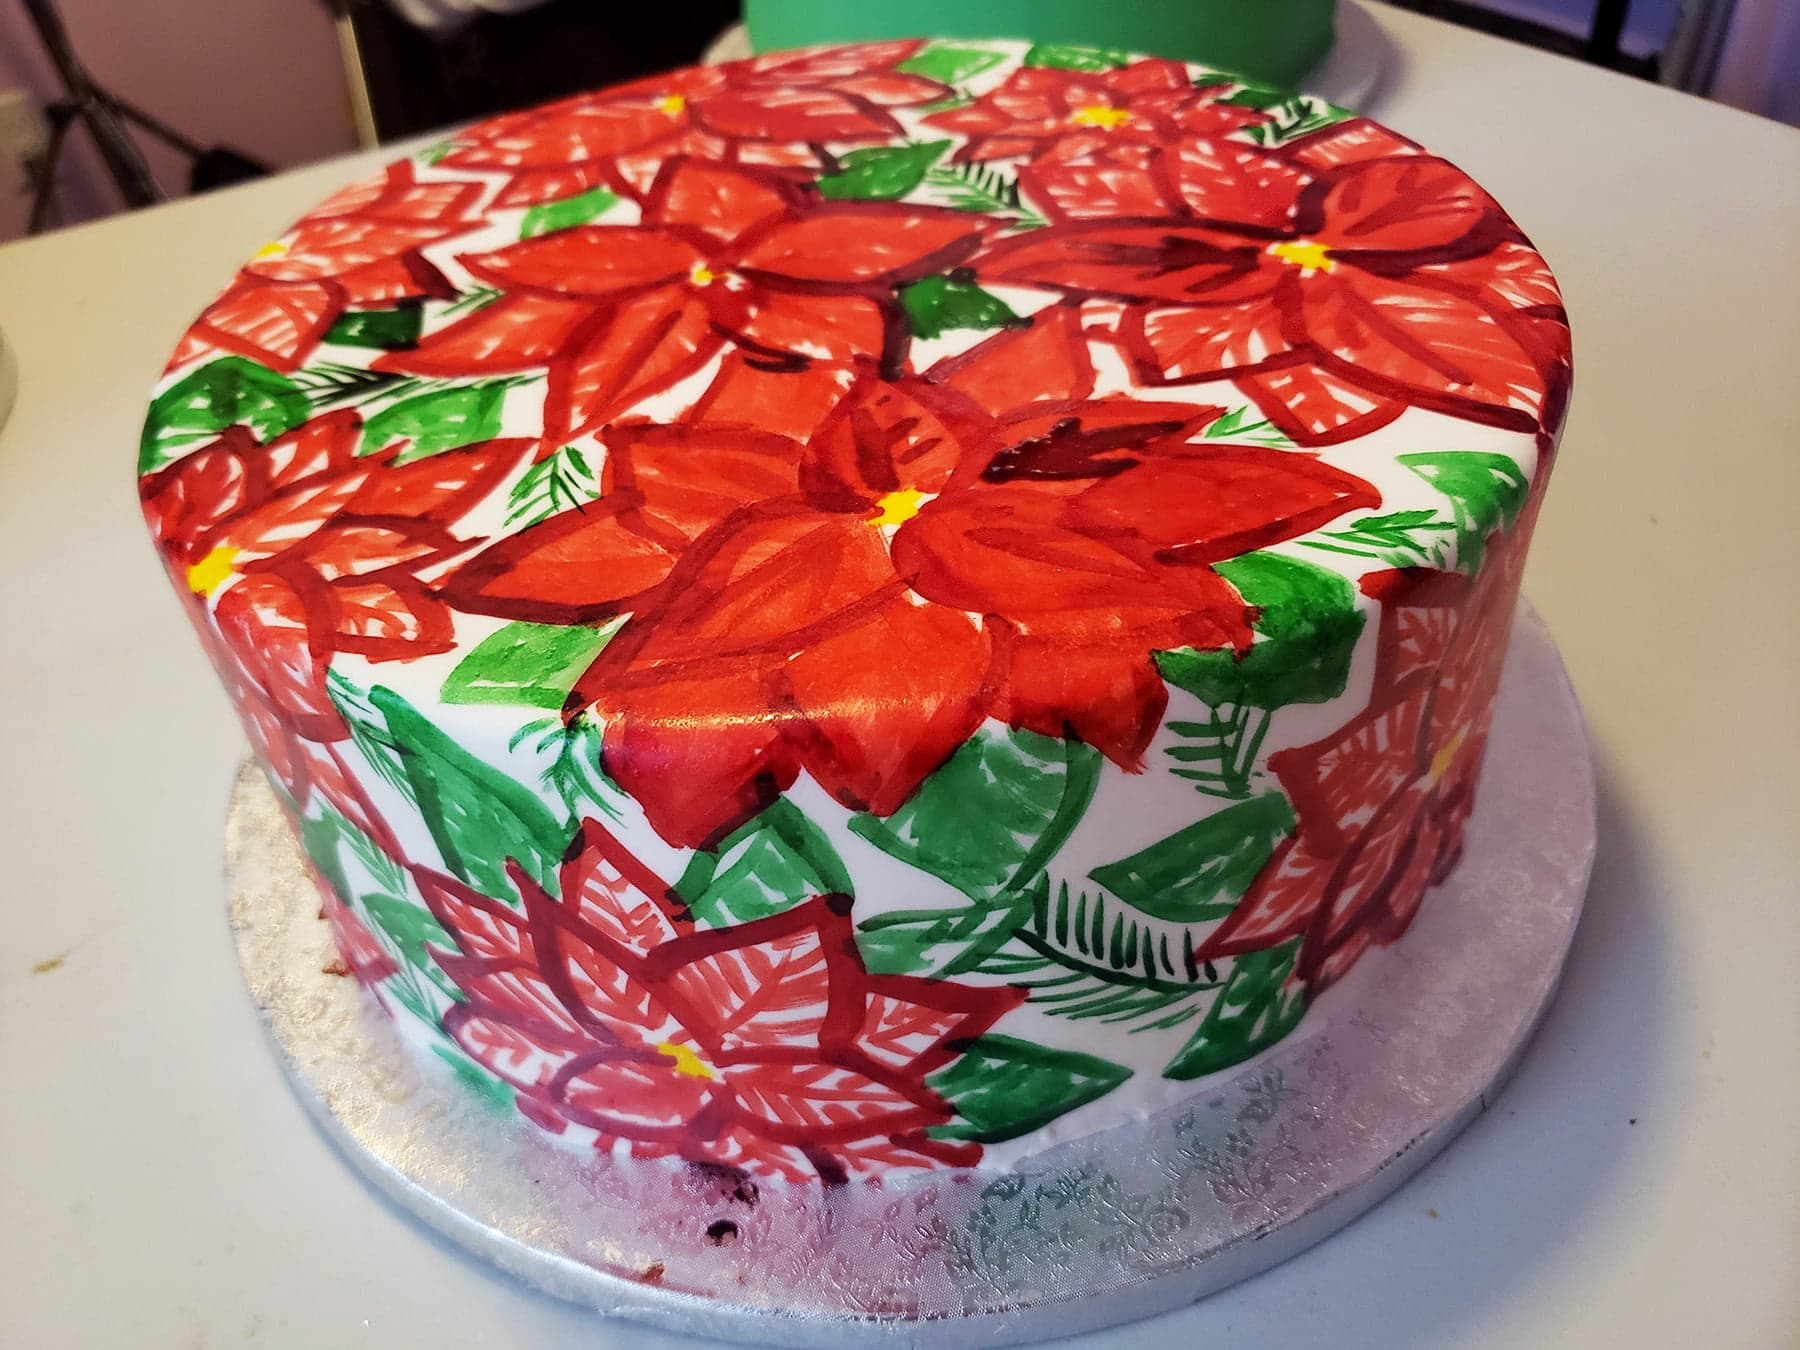 A large round cake is covered in a hand painted poinsetta design, in reds and greens.